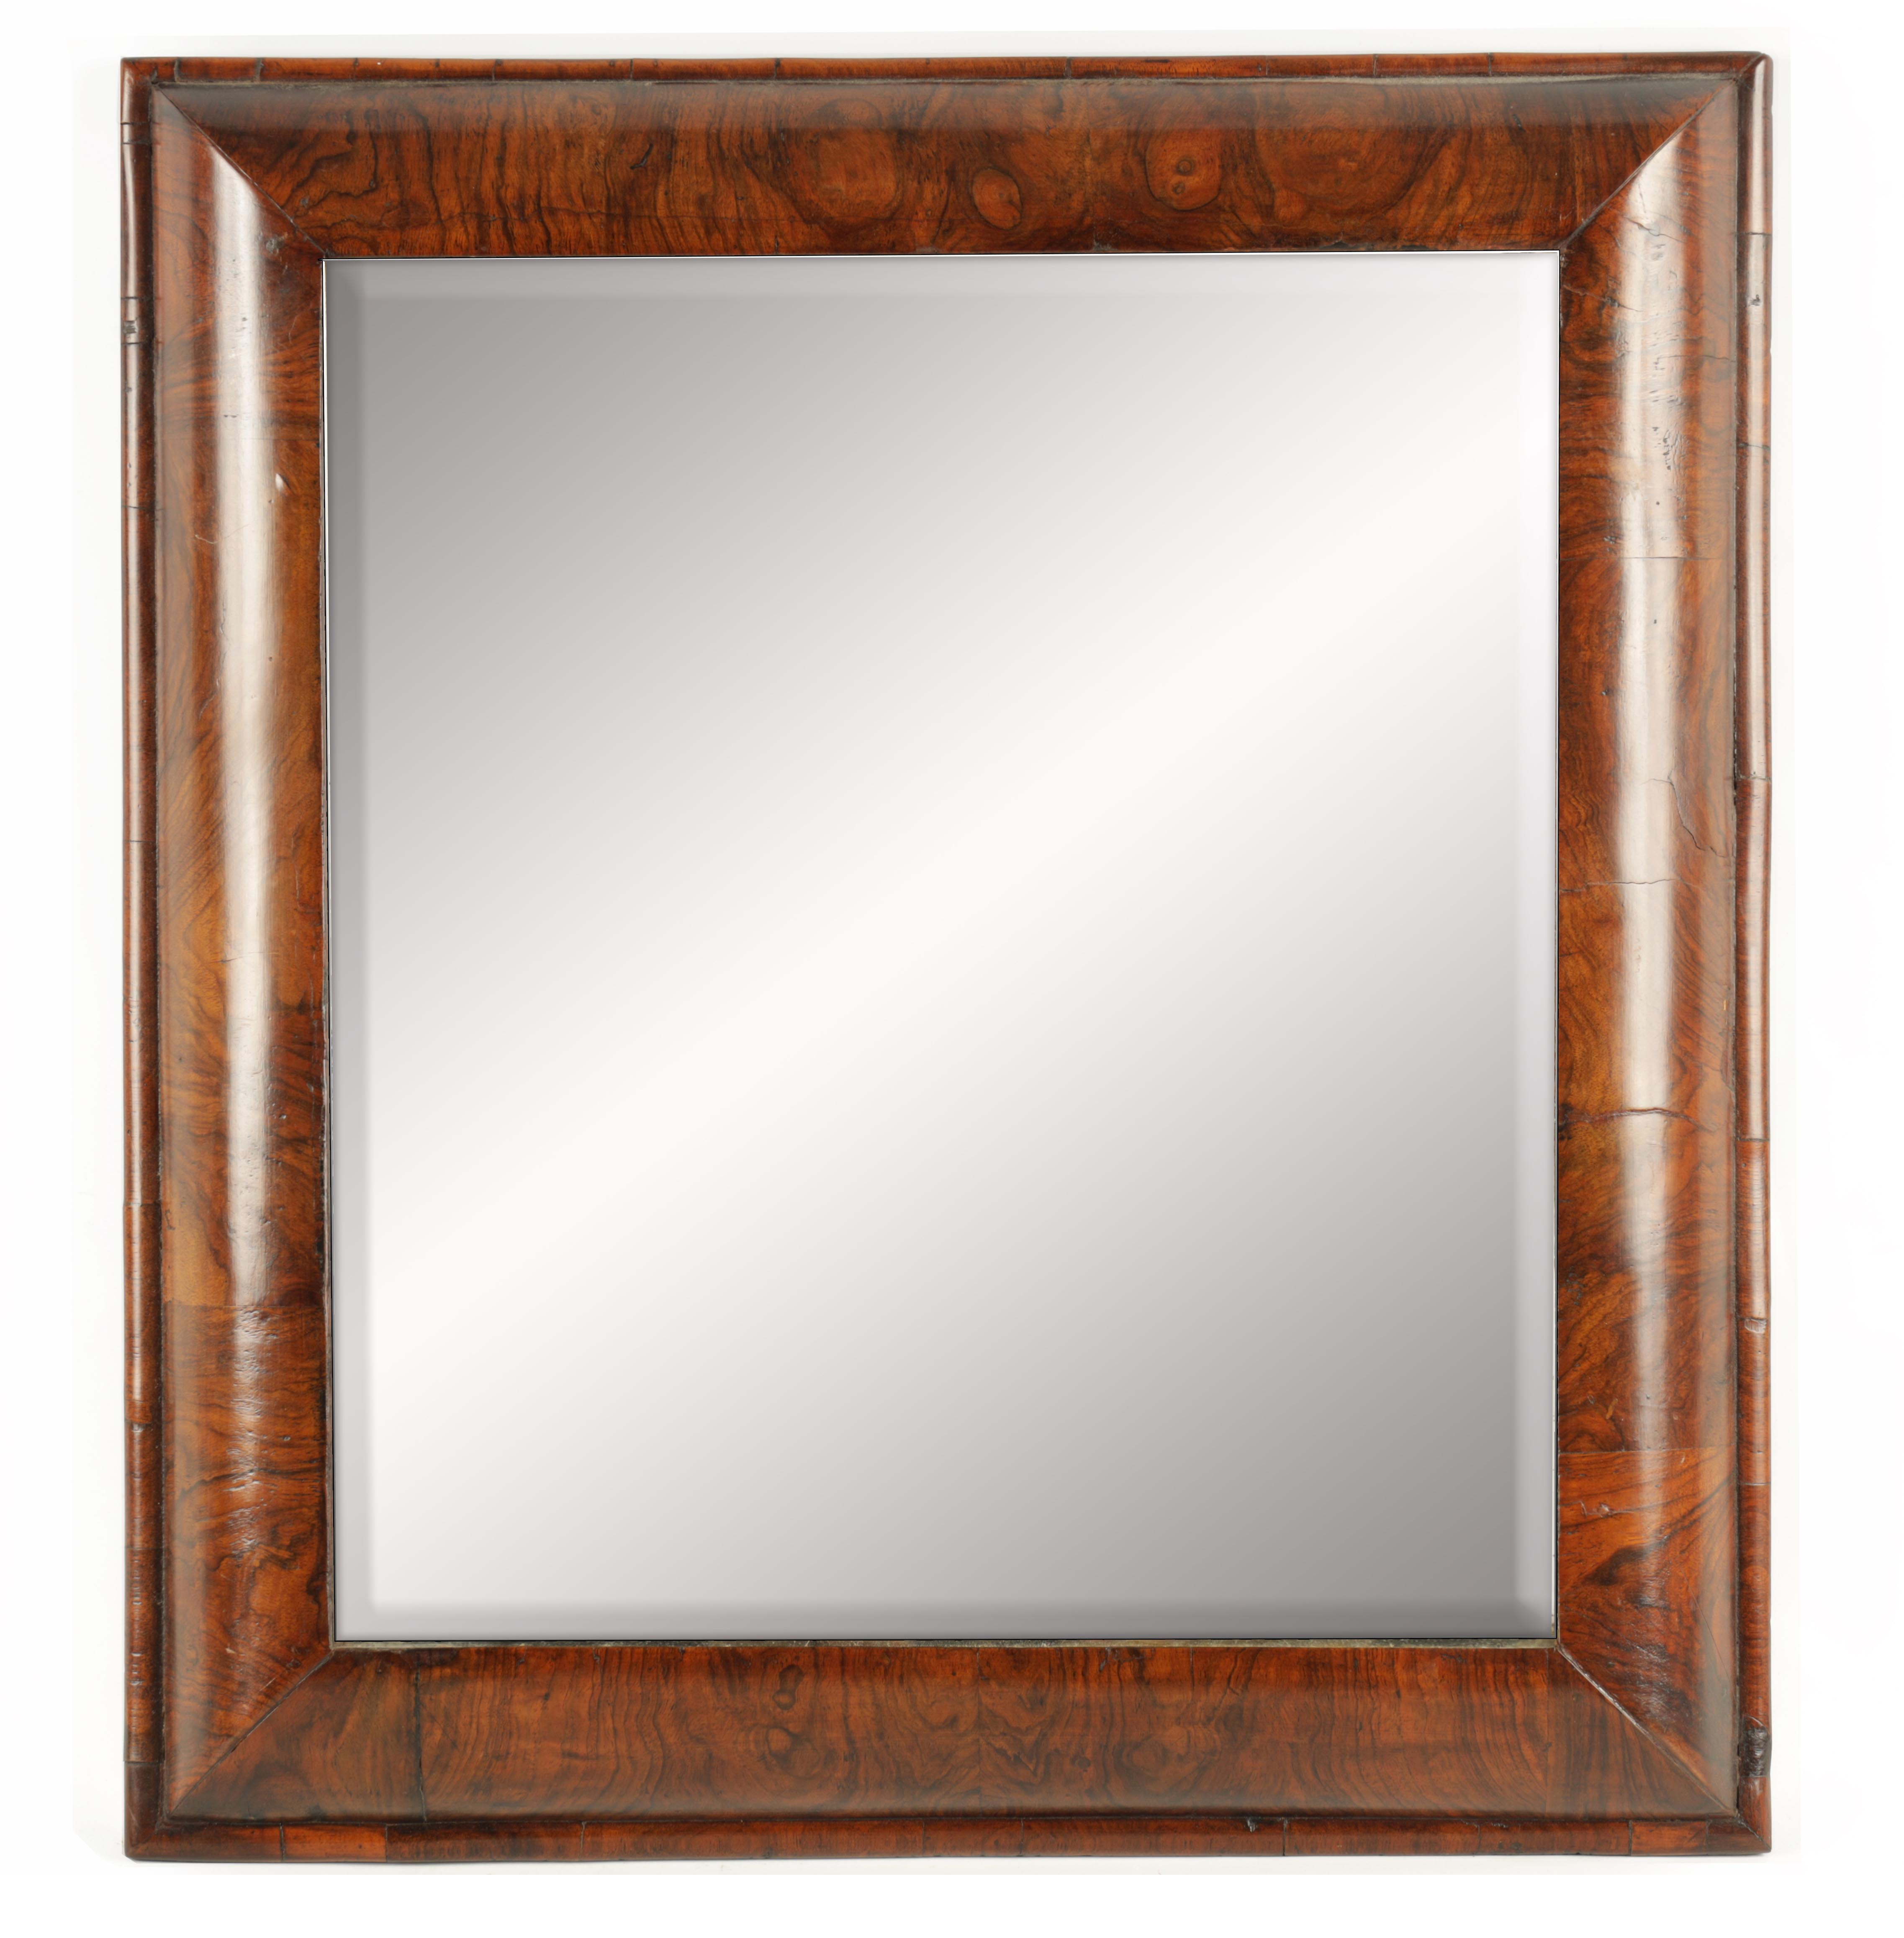 A WILLIAM AND MARY FIGURED WALNUT D SHAPED HANGING MIRROR fitted with original bevelled mirror